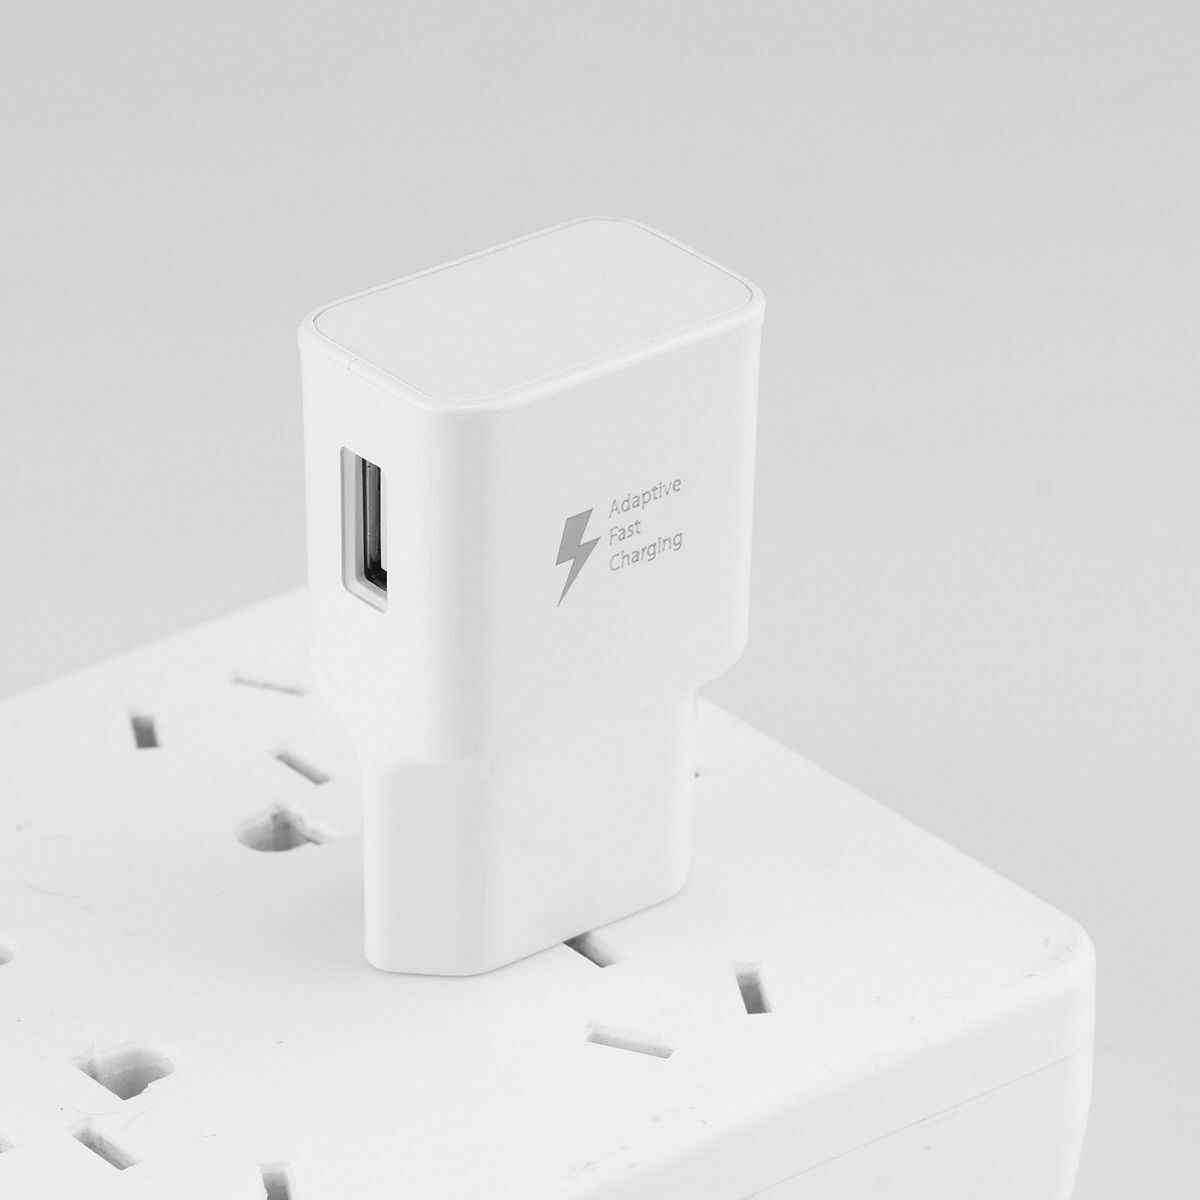 5V 2.4A EU Travel Charger Adapter Voor Doogee BL5500 S55 S60 Mix Lite X70 X50L X50 X55 X53 X60L s50 BL12000 Pro Micro Usb-kabel